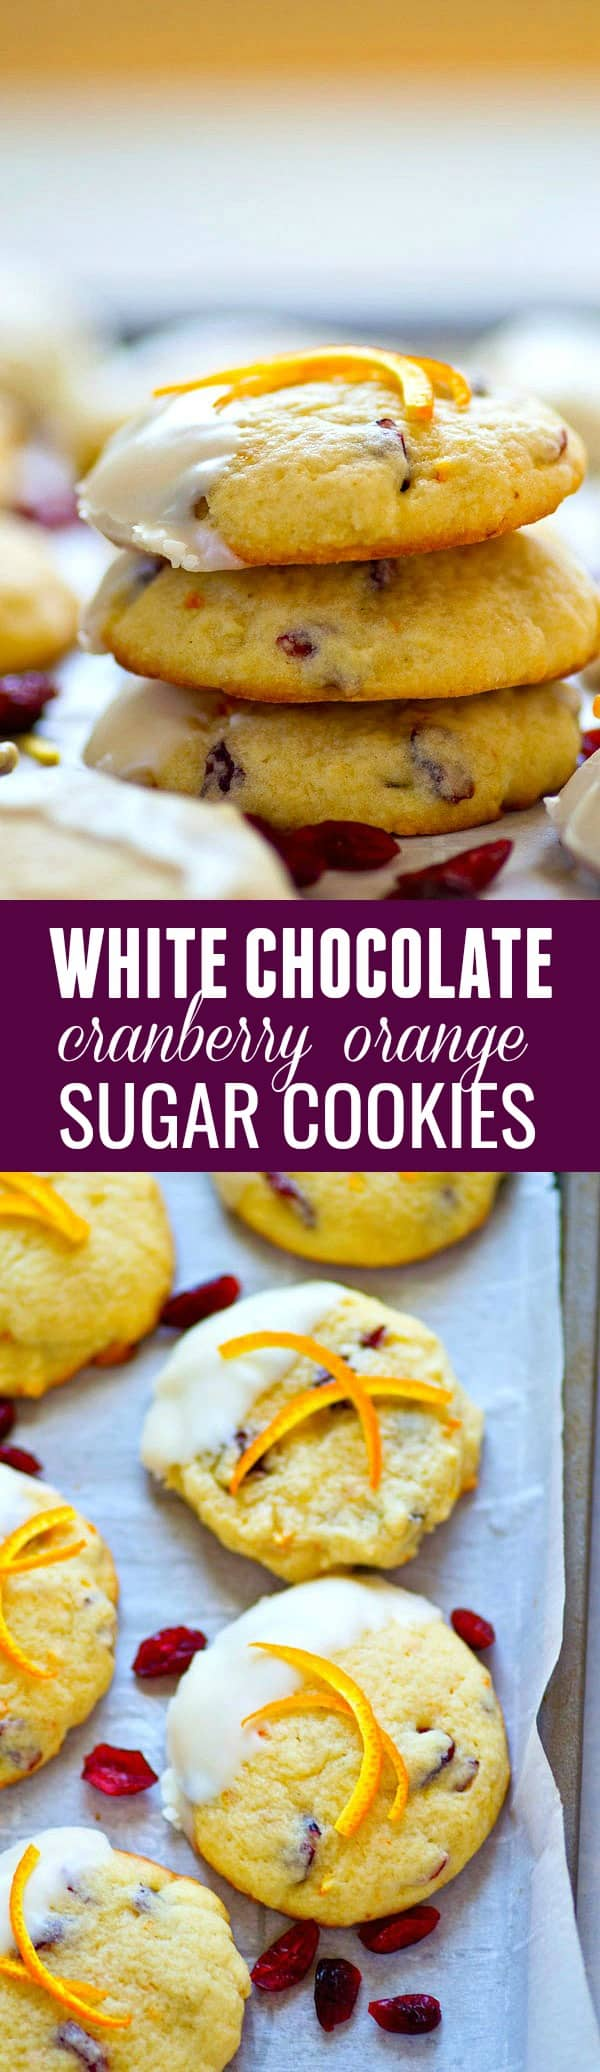 These white chocolate-dipped cranberry orange sugar cookies are the most festive cookie to include on your cookie line-up! The trio of cranberries, orange, and white chocolate is unbeatable!